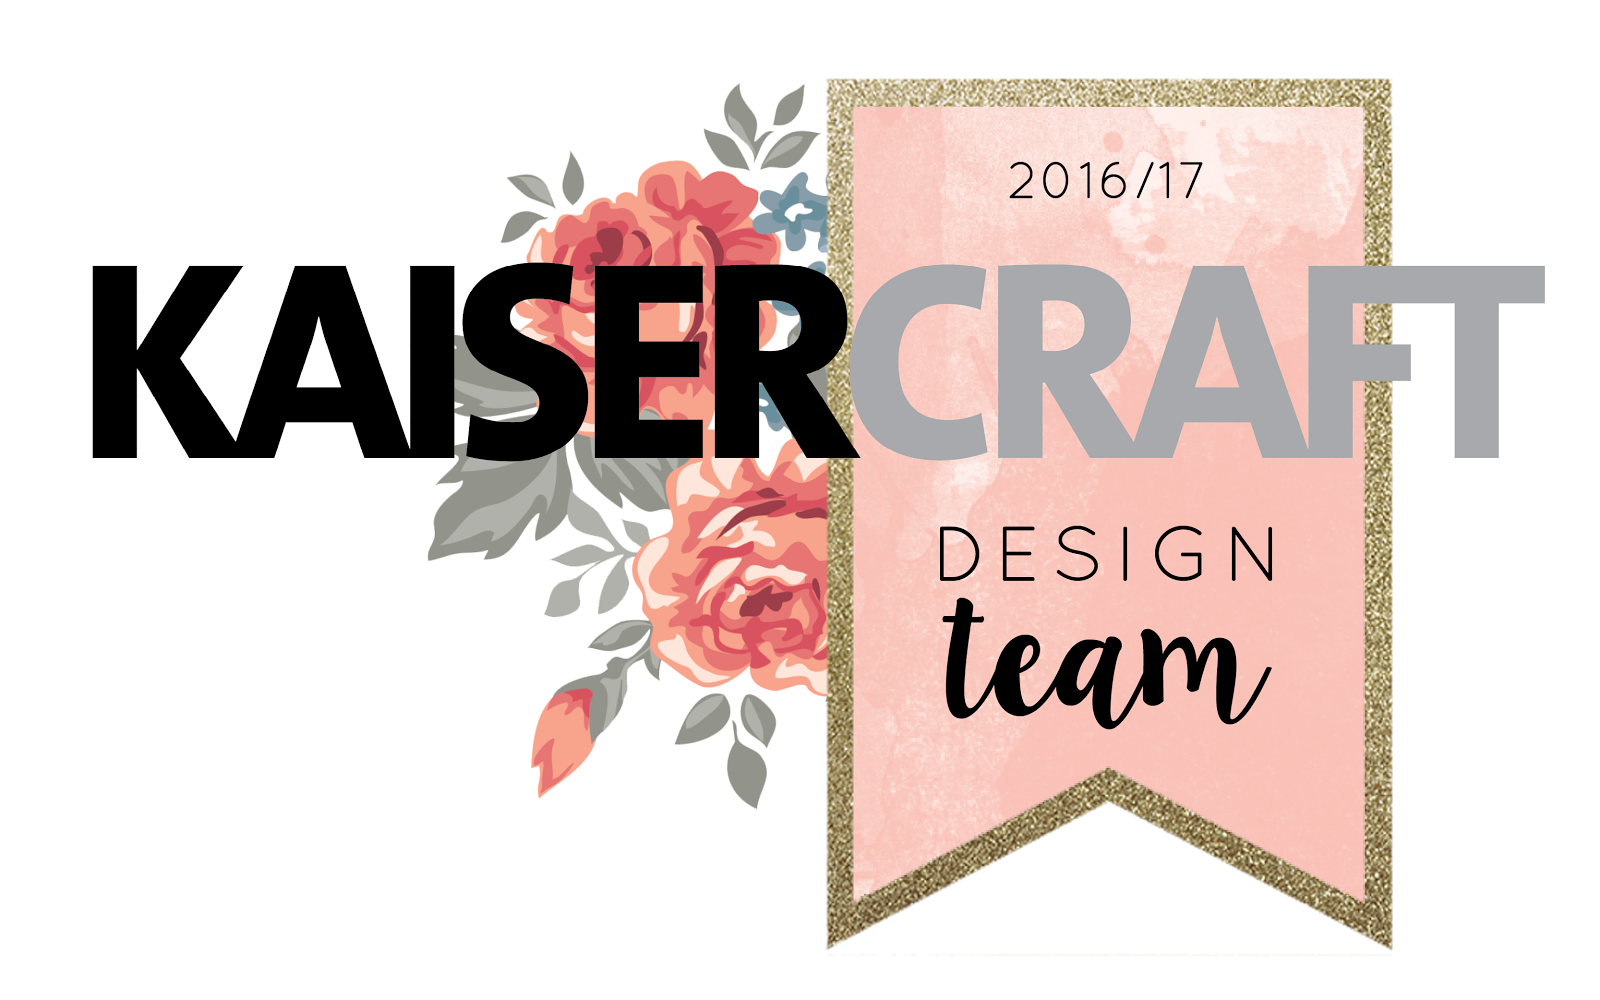 Kaisercraft design team 2016-17